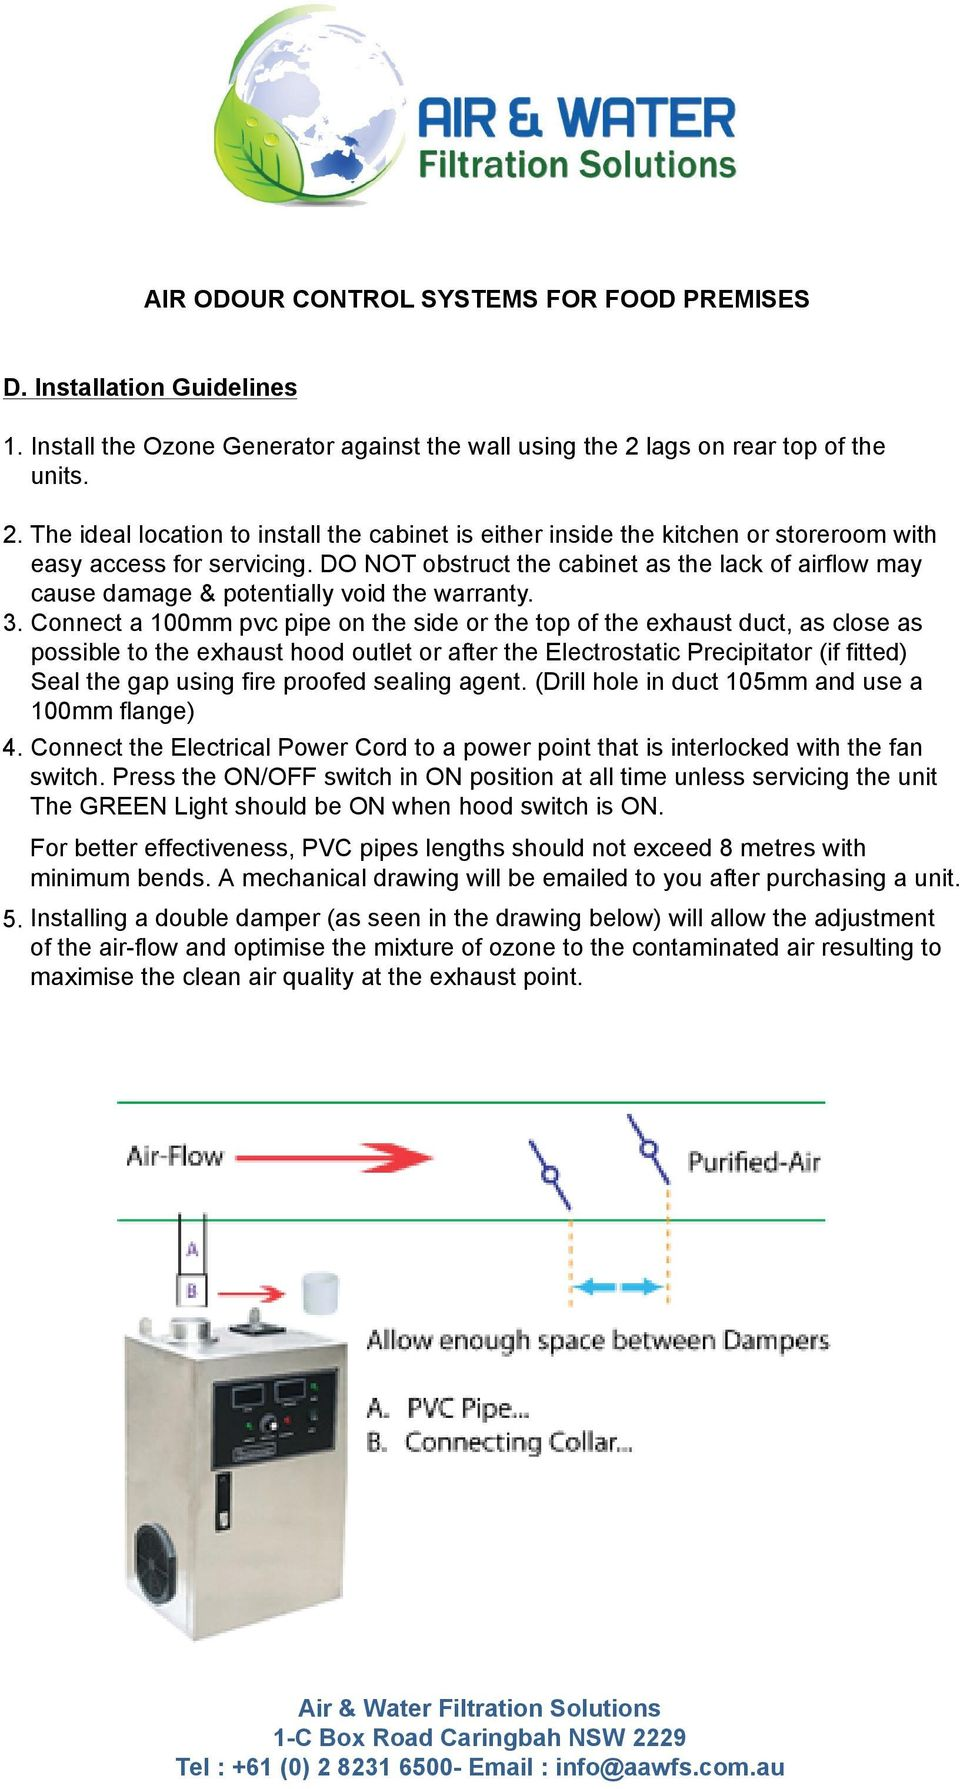 Air Odour Control Systems For Food Premises Ozone Generator Oz 03 Circuit Plate Kit Do Not Obstruct The Cabinet As Lack Of Airflow May Cause Damage Potentially Void